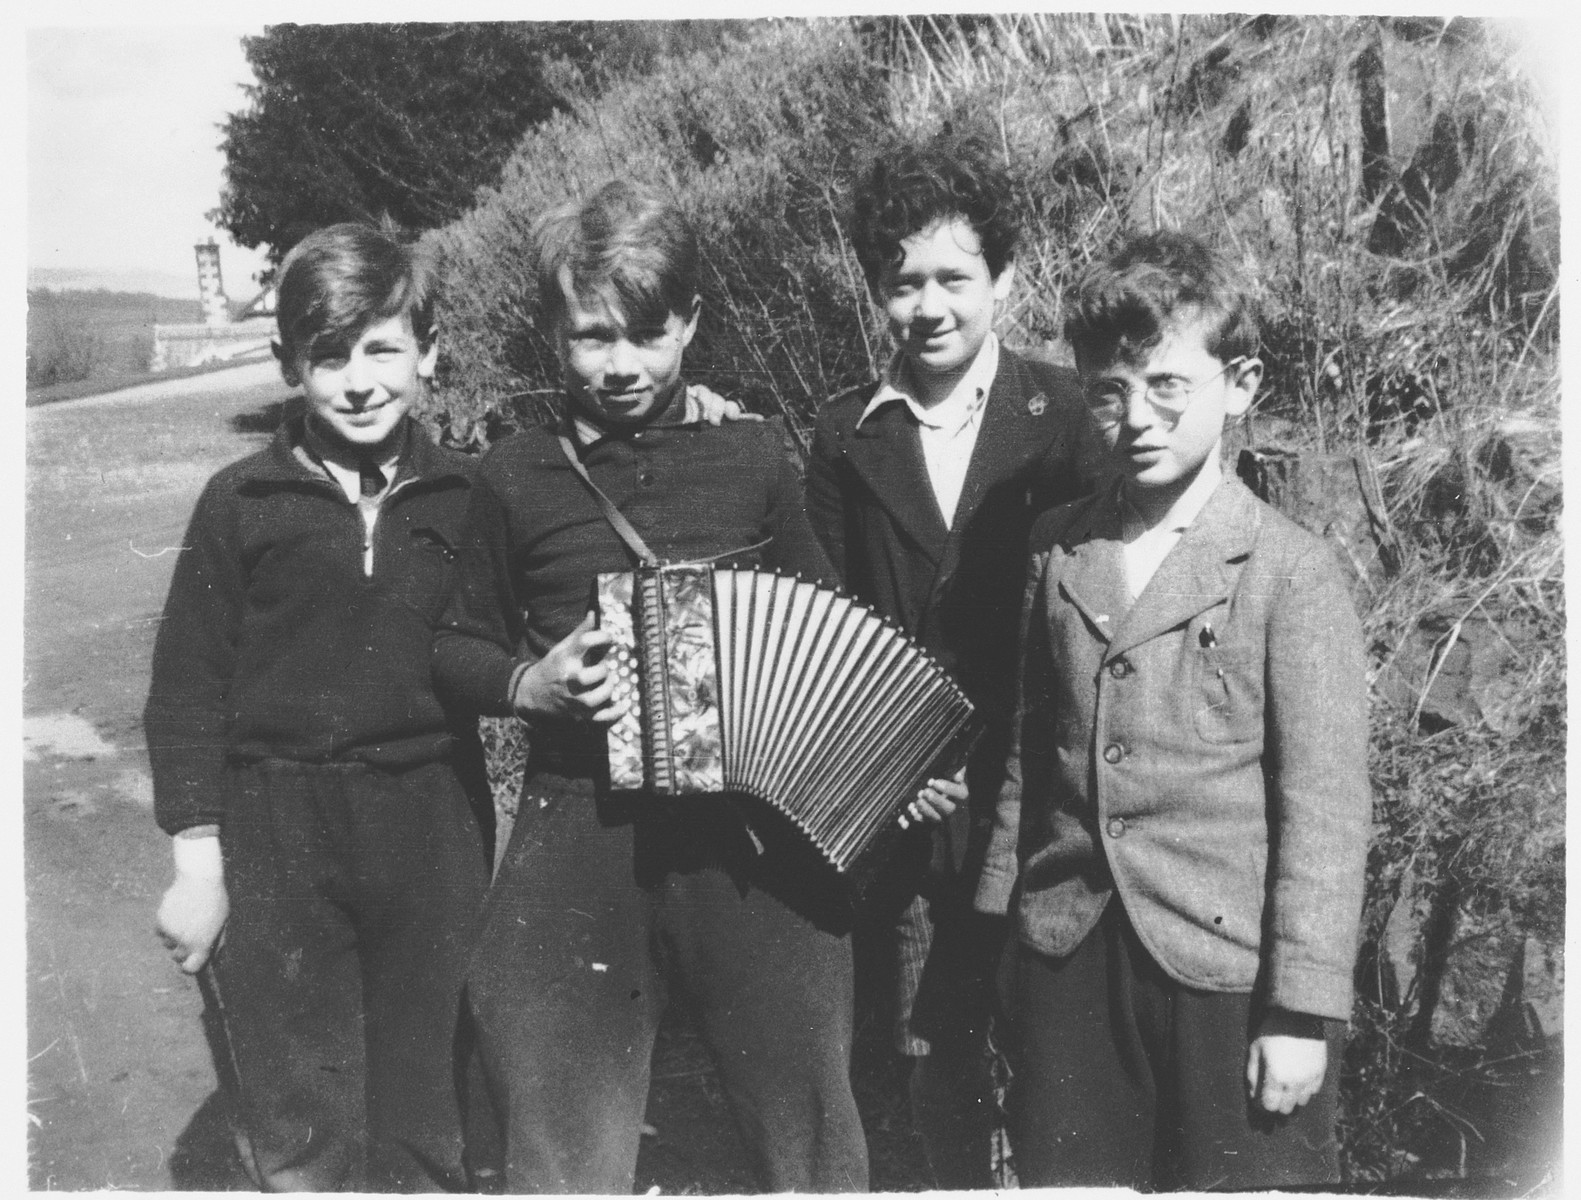 Portrait of four boys, one of whom is playing the accordian, in the Priory, a children's home in Selkirk Scotland.  Pictured are Henri Zang (Germany), Max Spiro (Hamm,Germany), Egon Drab (Vienna), and Kurt Deutsch (Ash, Czechoslovakia).  Netta Pringle, the assistant matron in the Priory, formed warm relations with many of the twenty-one Jewish children.  She took most of the photographs, which she assembled in the album and wrote the inscriptions.  In 1996 Miss Pringle gave the album to Gunther.